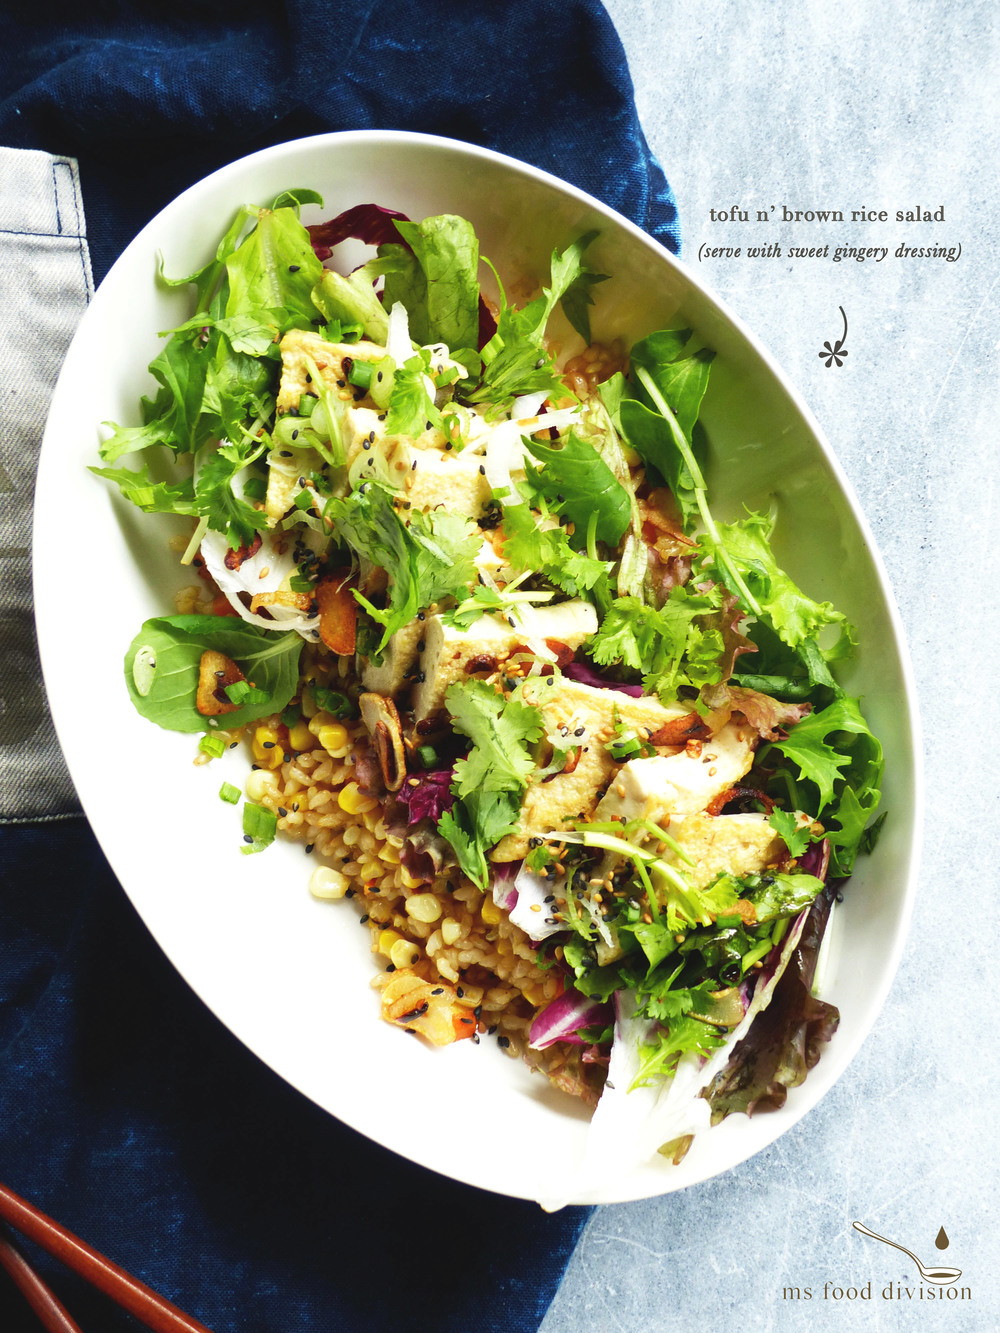 Servings: 1 person    Preparation Time: 15 minutes    Cooking Time: 15-30 minutes    Ingredients (salad):   1 bowl cooked brown rice  1 cooked corn cob, removed in kernel  1/2 small onion, finely chopped  1 small carrot, finely chopped  50-80g extra-firm tofu, triangled/squared  1 bowl mixed greens  1-2 garlic cloves, finely chopped  1 shallot, finely chopped  1 bunch coriander, chopped  1 bunch spring onion, chopped  1 tsp sesame seeds  1/2 chili, finely chopped  1 tbsp soy sauce  extra-virgin olive oil   Ingredients (dressing):   1 tsp grated ginger  1-2 tbsp soy sauce  1 tbsp mirin  1-2 tbsp water  1 tsp honey